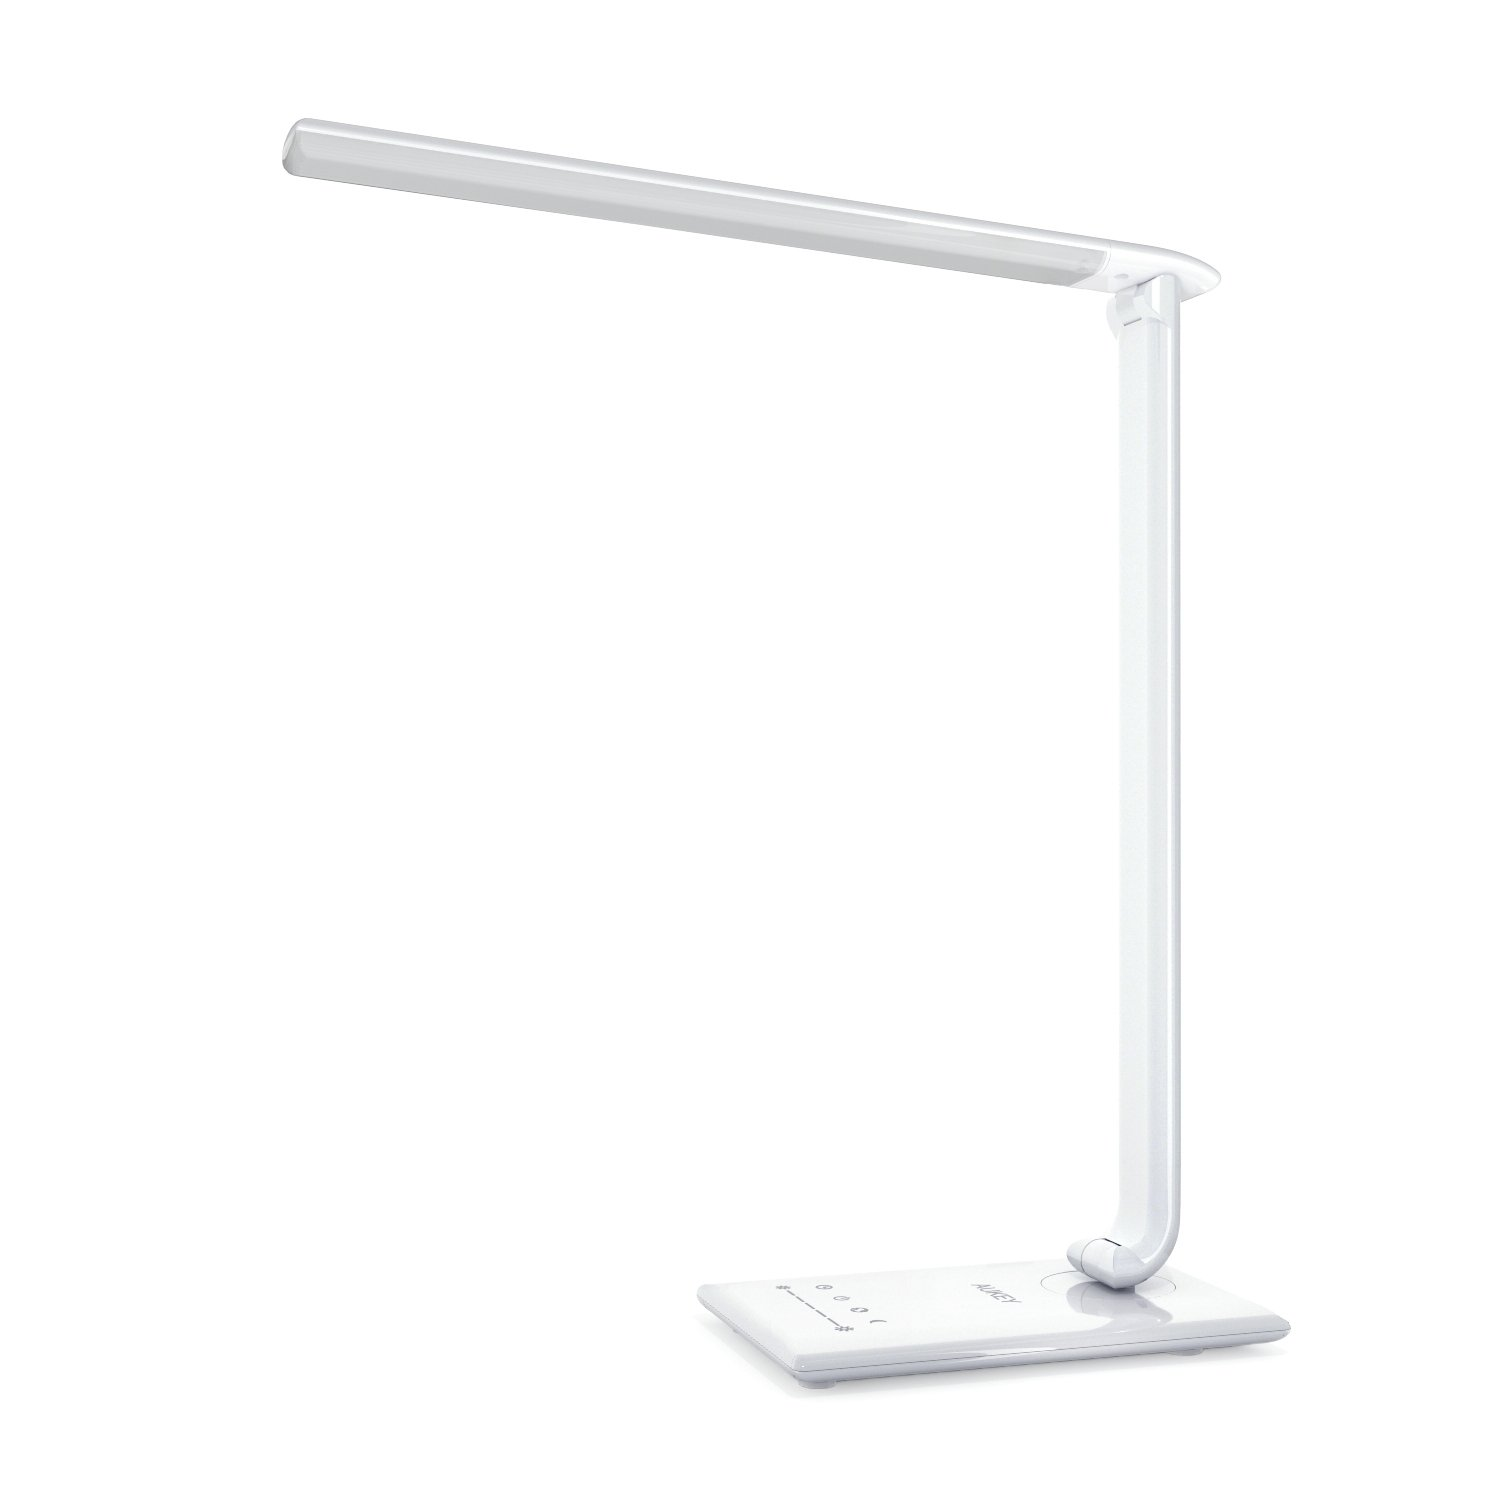 AUKEY Desk Lamp, 12W Dimmable LED Table Lamp with USB Charging Port, 7 Level Dimmer, Touch-Sensitive Control (White)